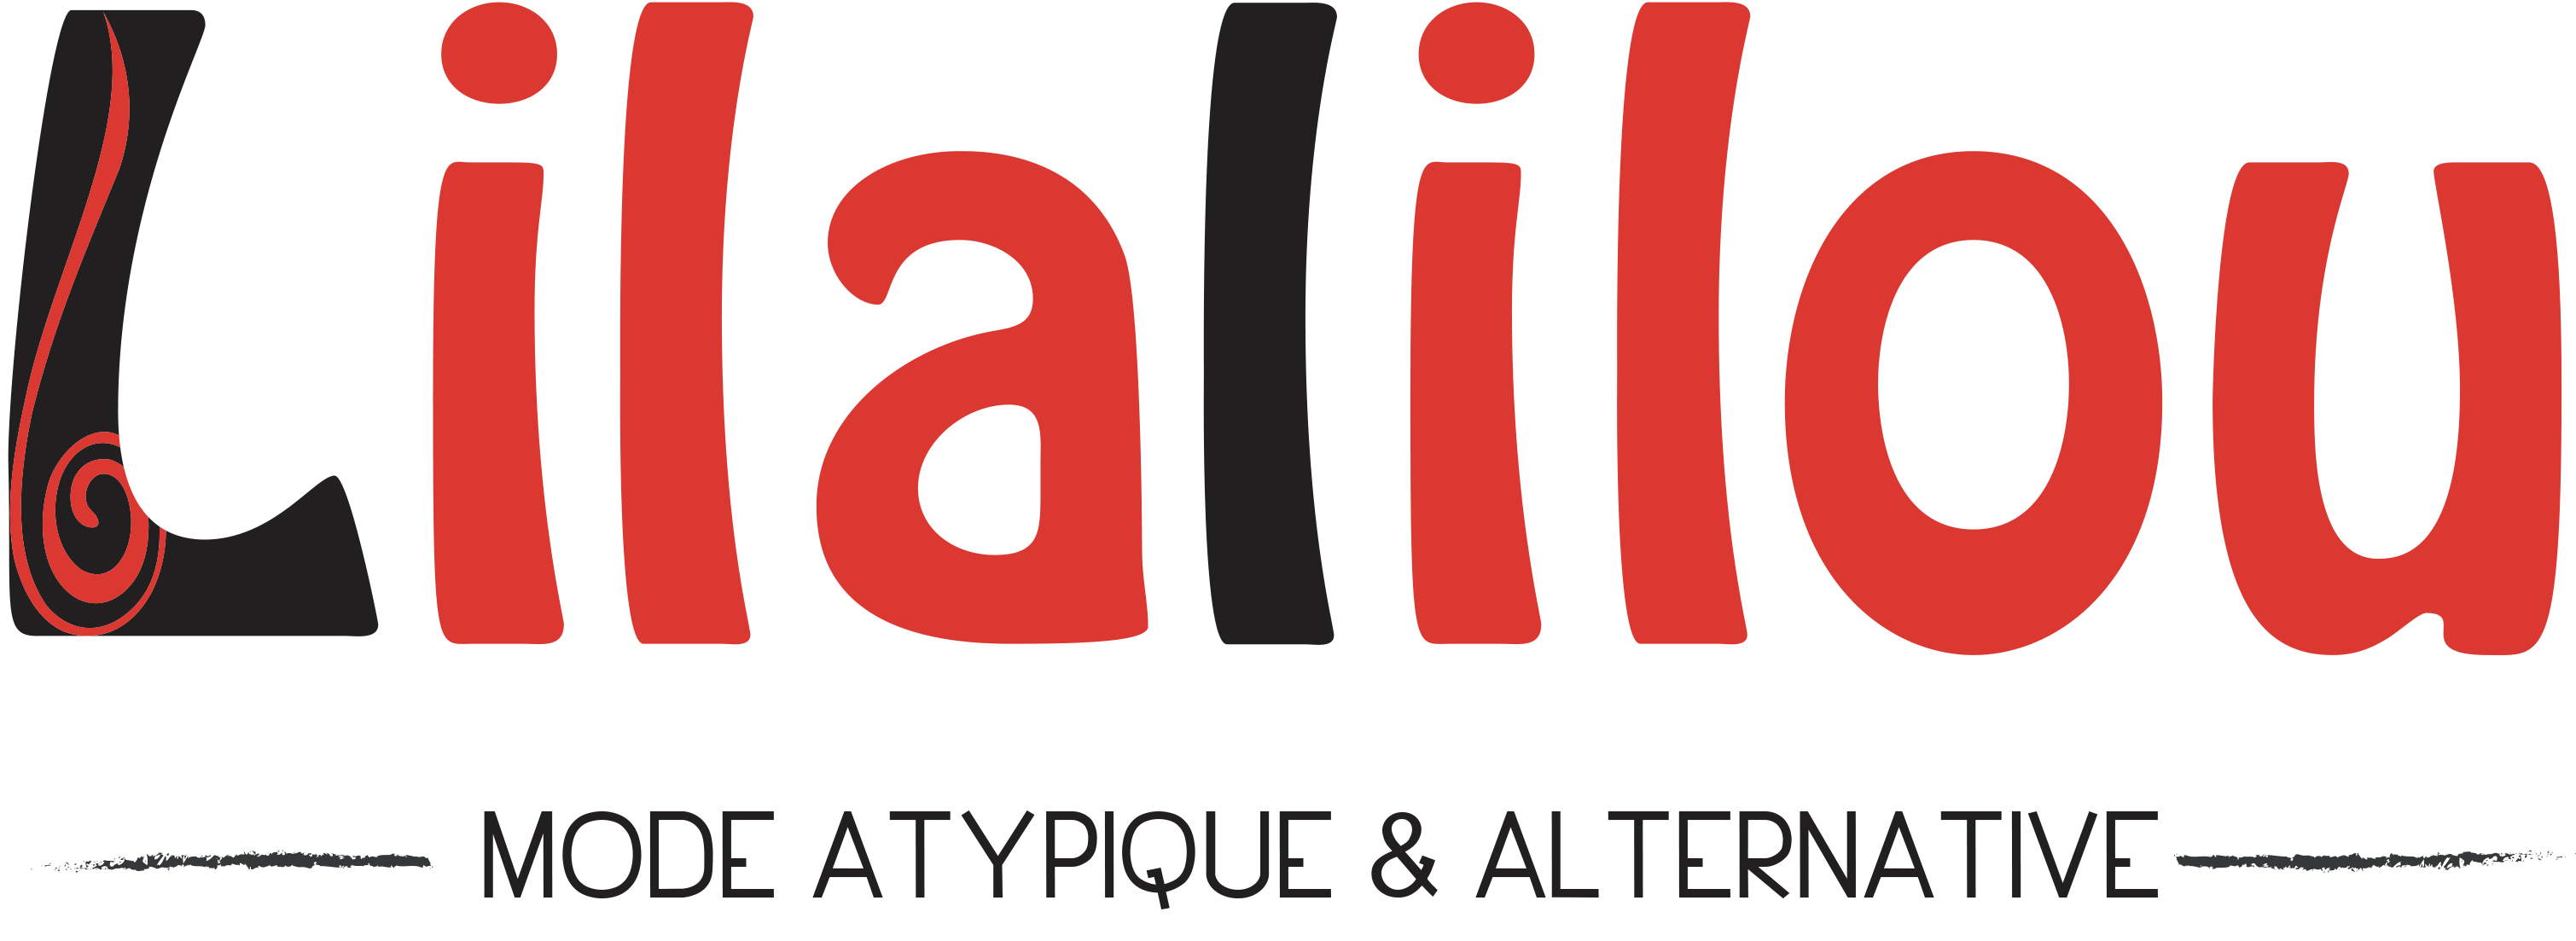 https://www.lilalilou.com/